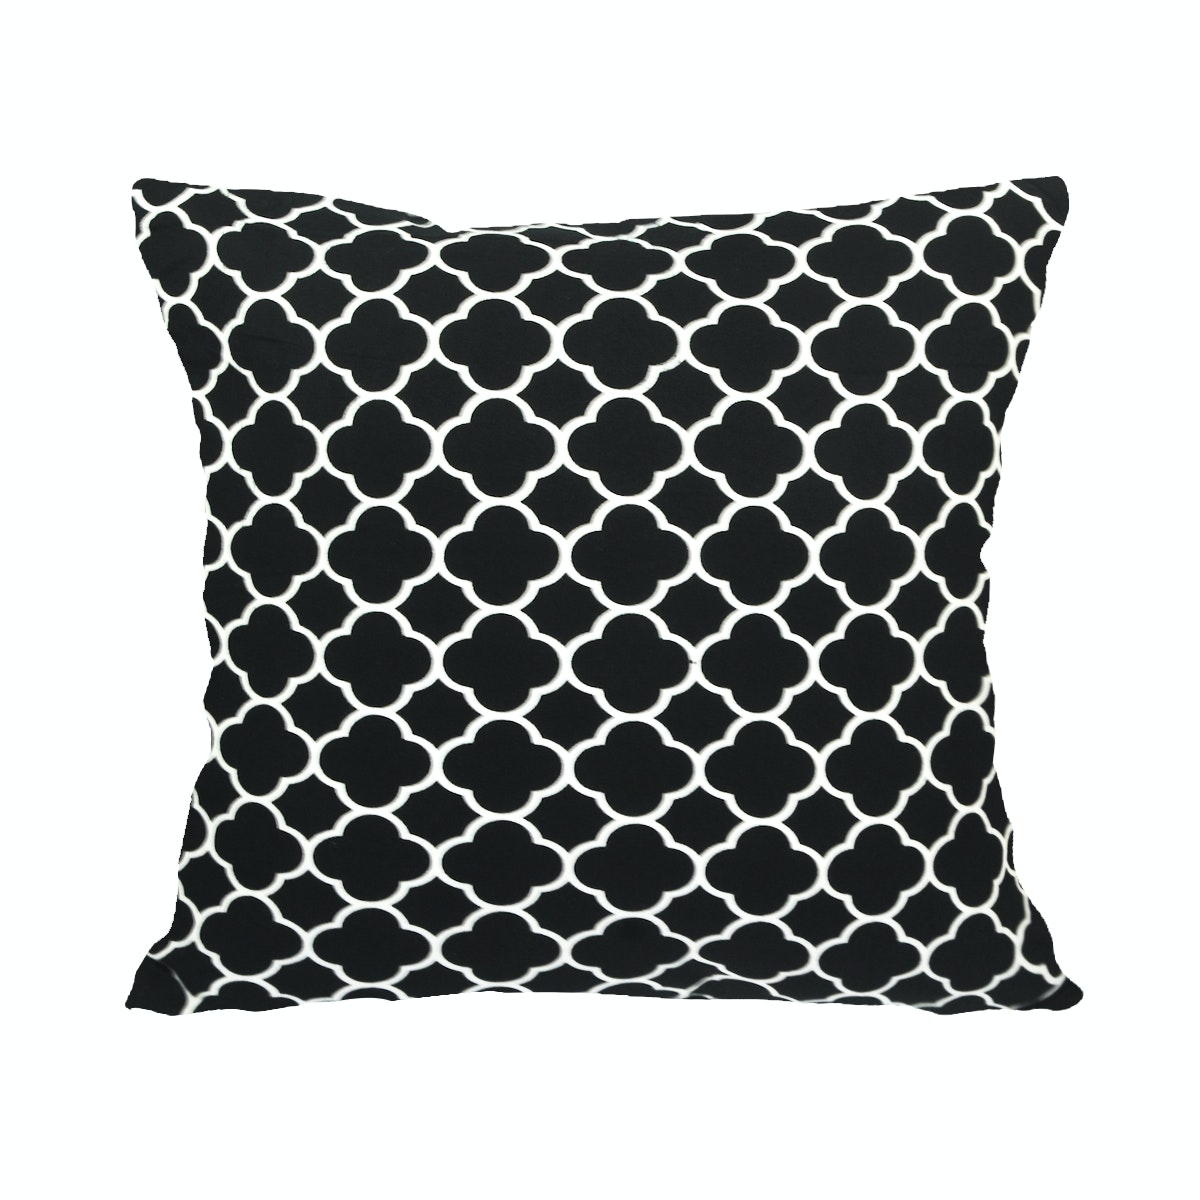 Stiletto Living Cushion Cover / Sarung Bantal Monokrom - Bw Moroccan